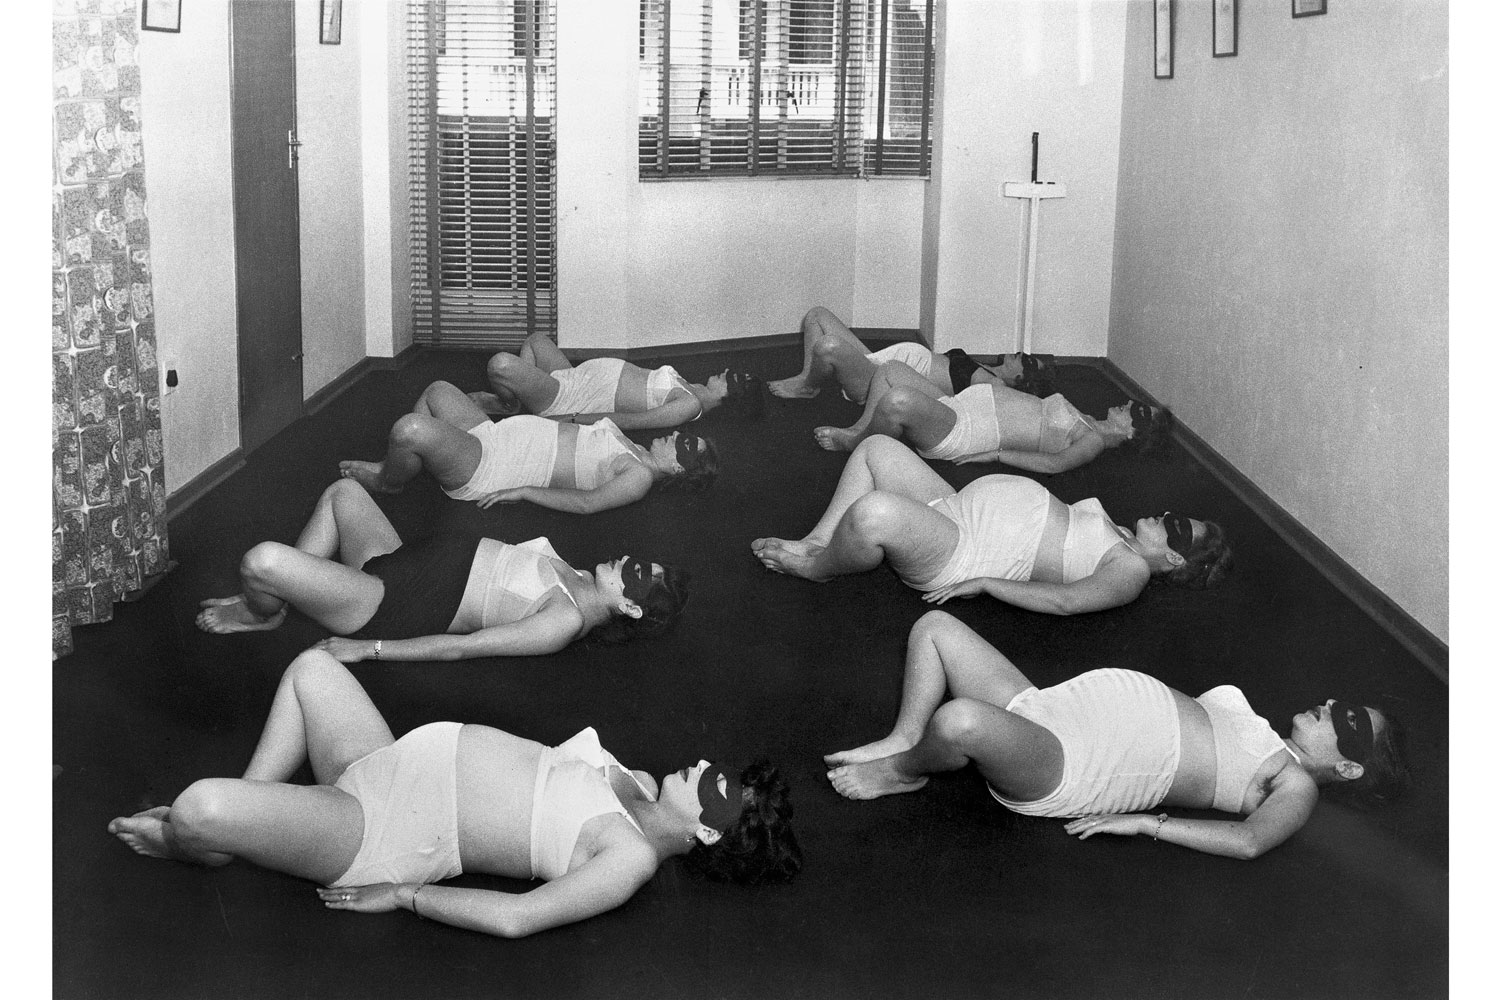 Exhibition.  Motherlode.  The Photographer's Gallery, London, England. On view until January 15, 2014. Pictured: Women in ante-natal classes exercising by Grantly Dick-Read, 1955.